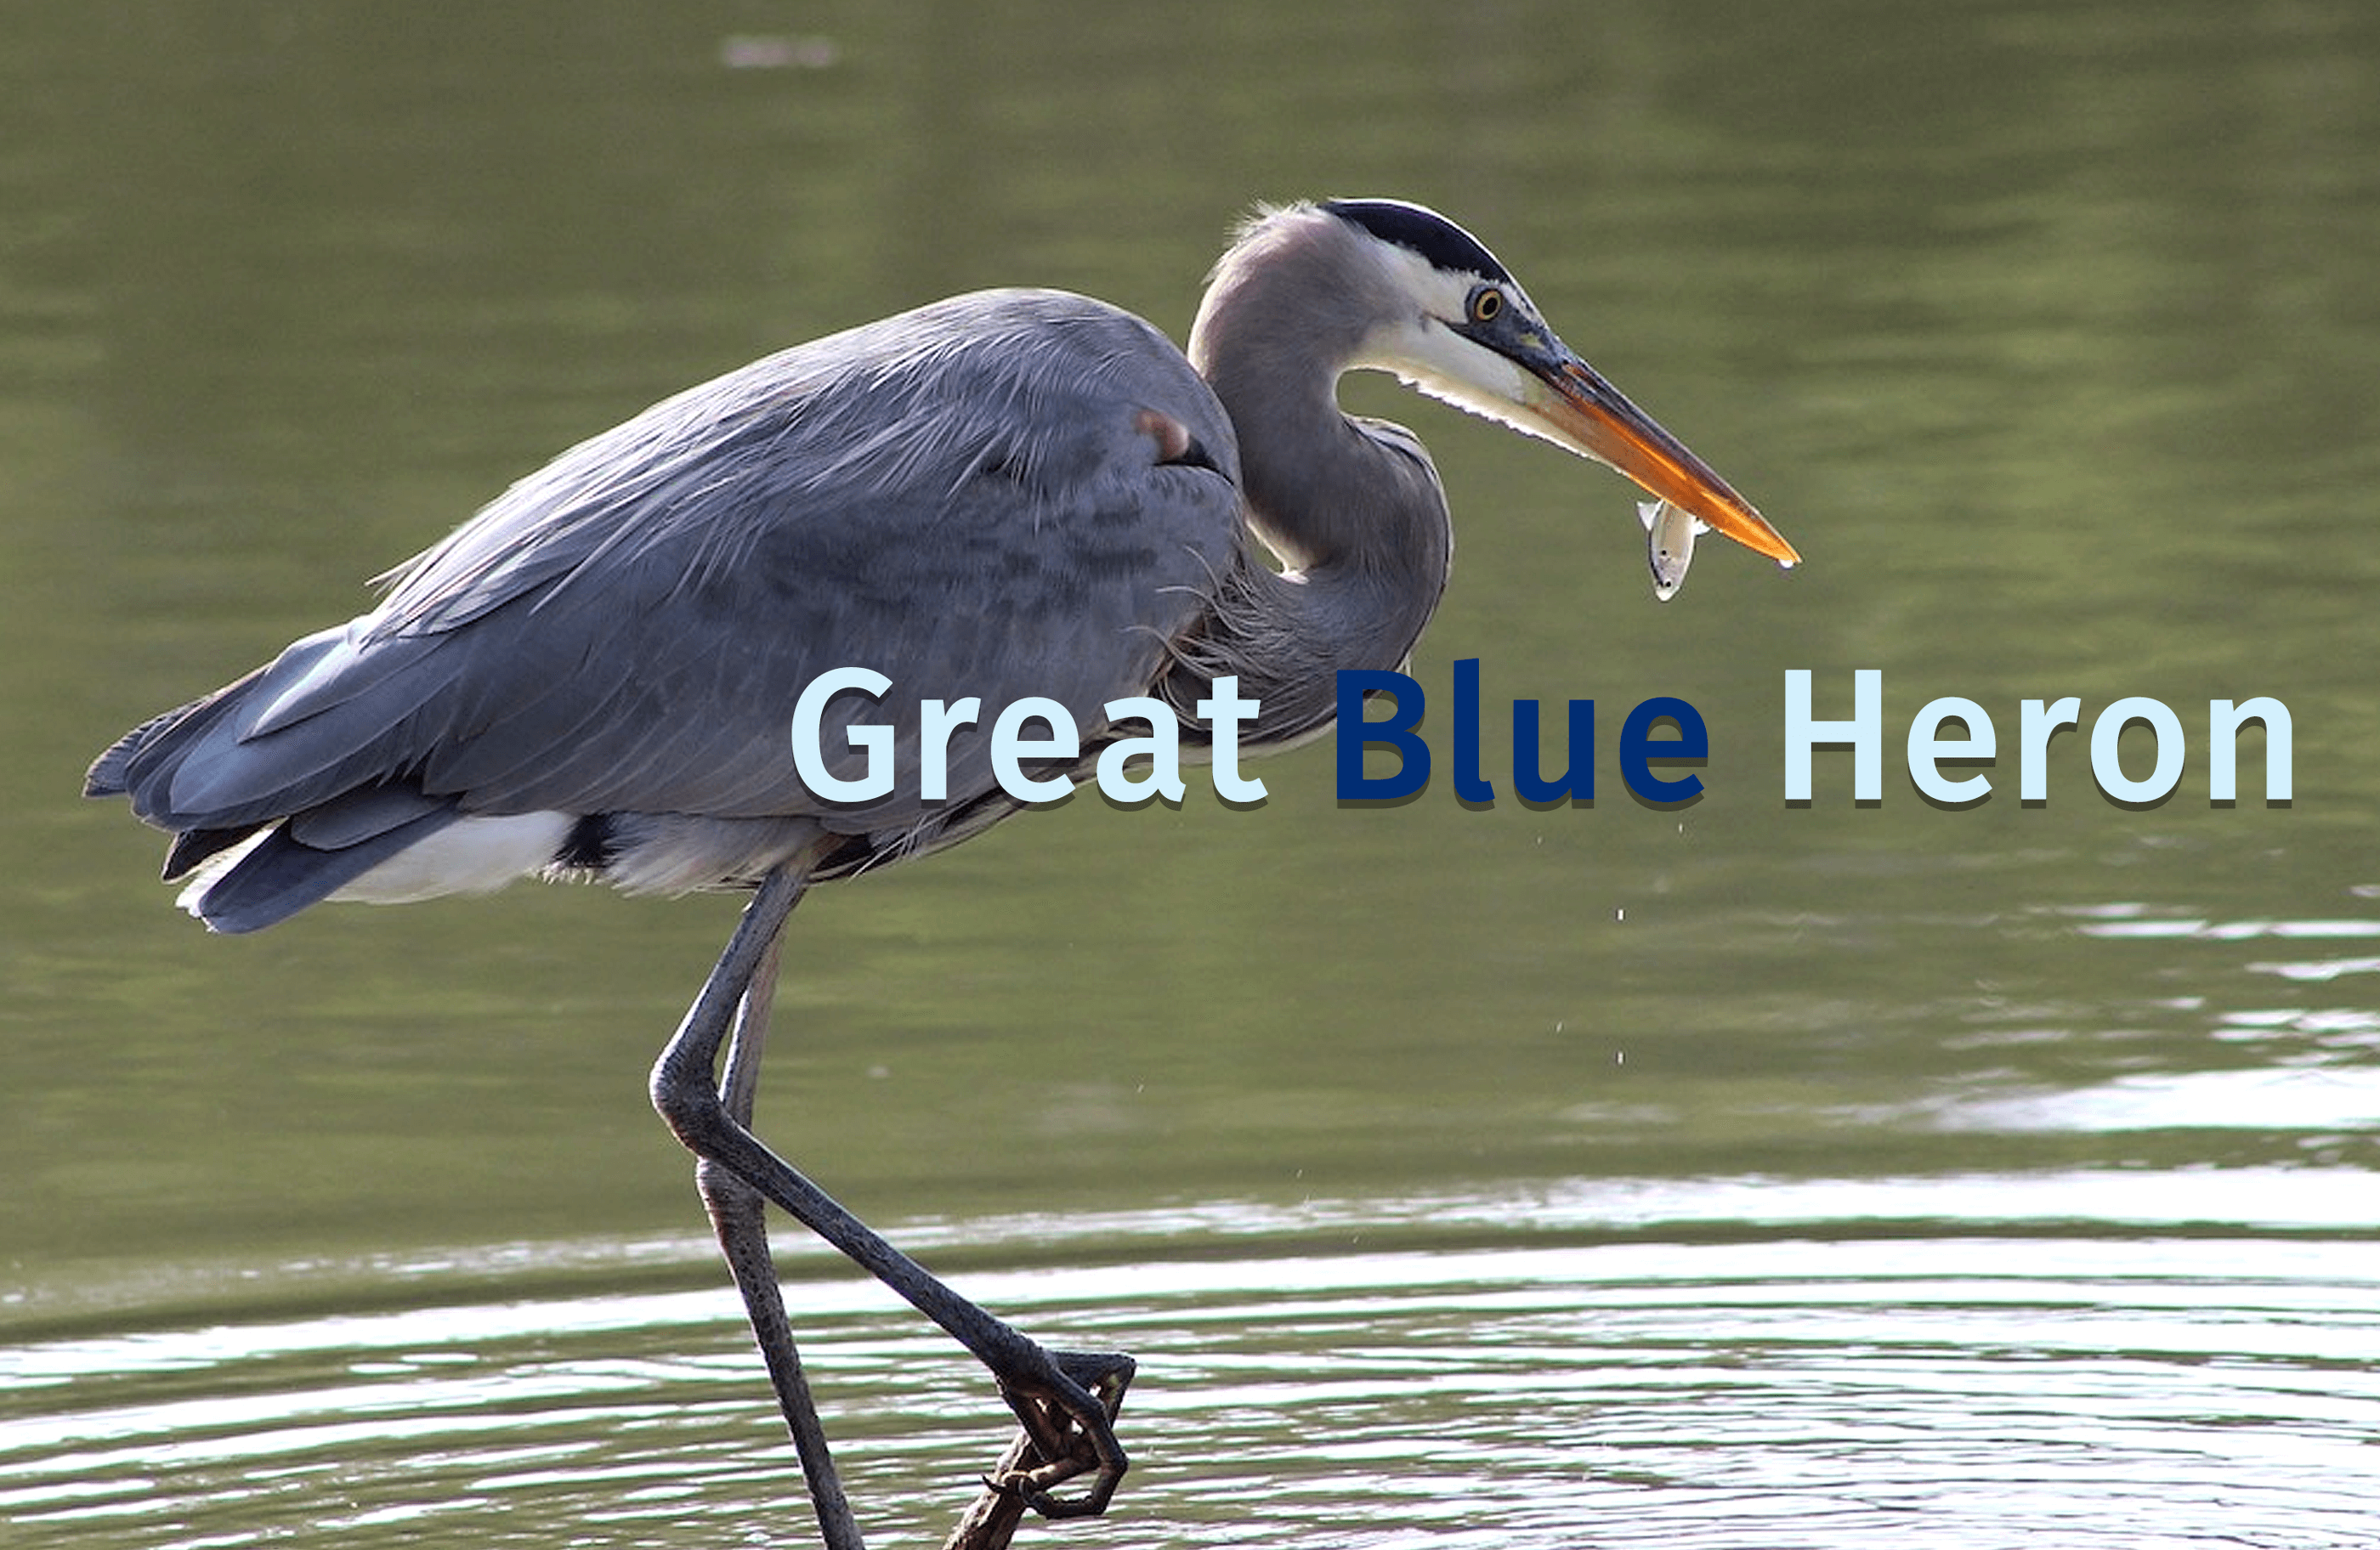 A blue Heron bird stands in a shallow pid iwth a little fish in hi mouth. The words Great Blue Heron are typed over the photo.